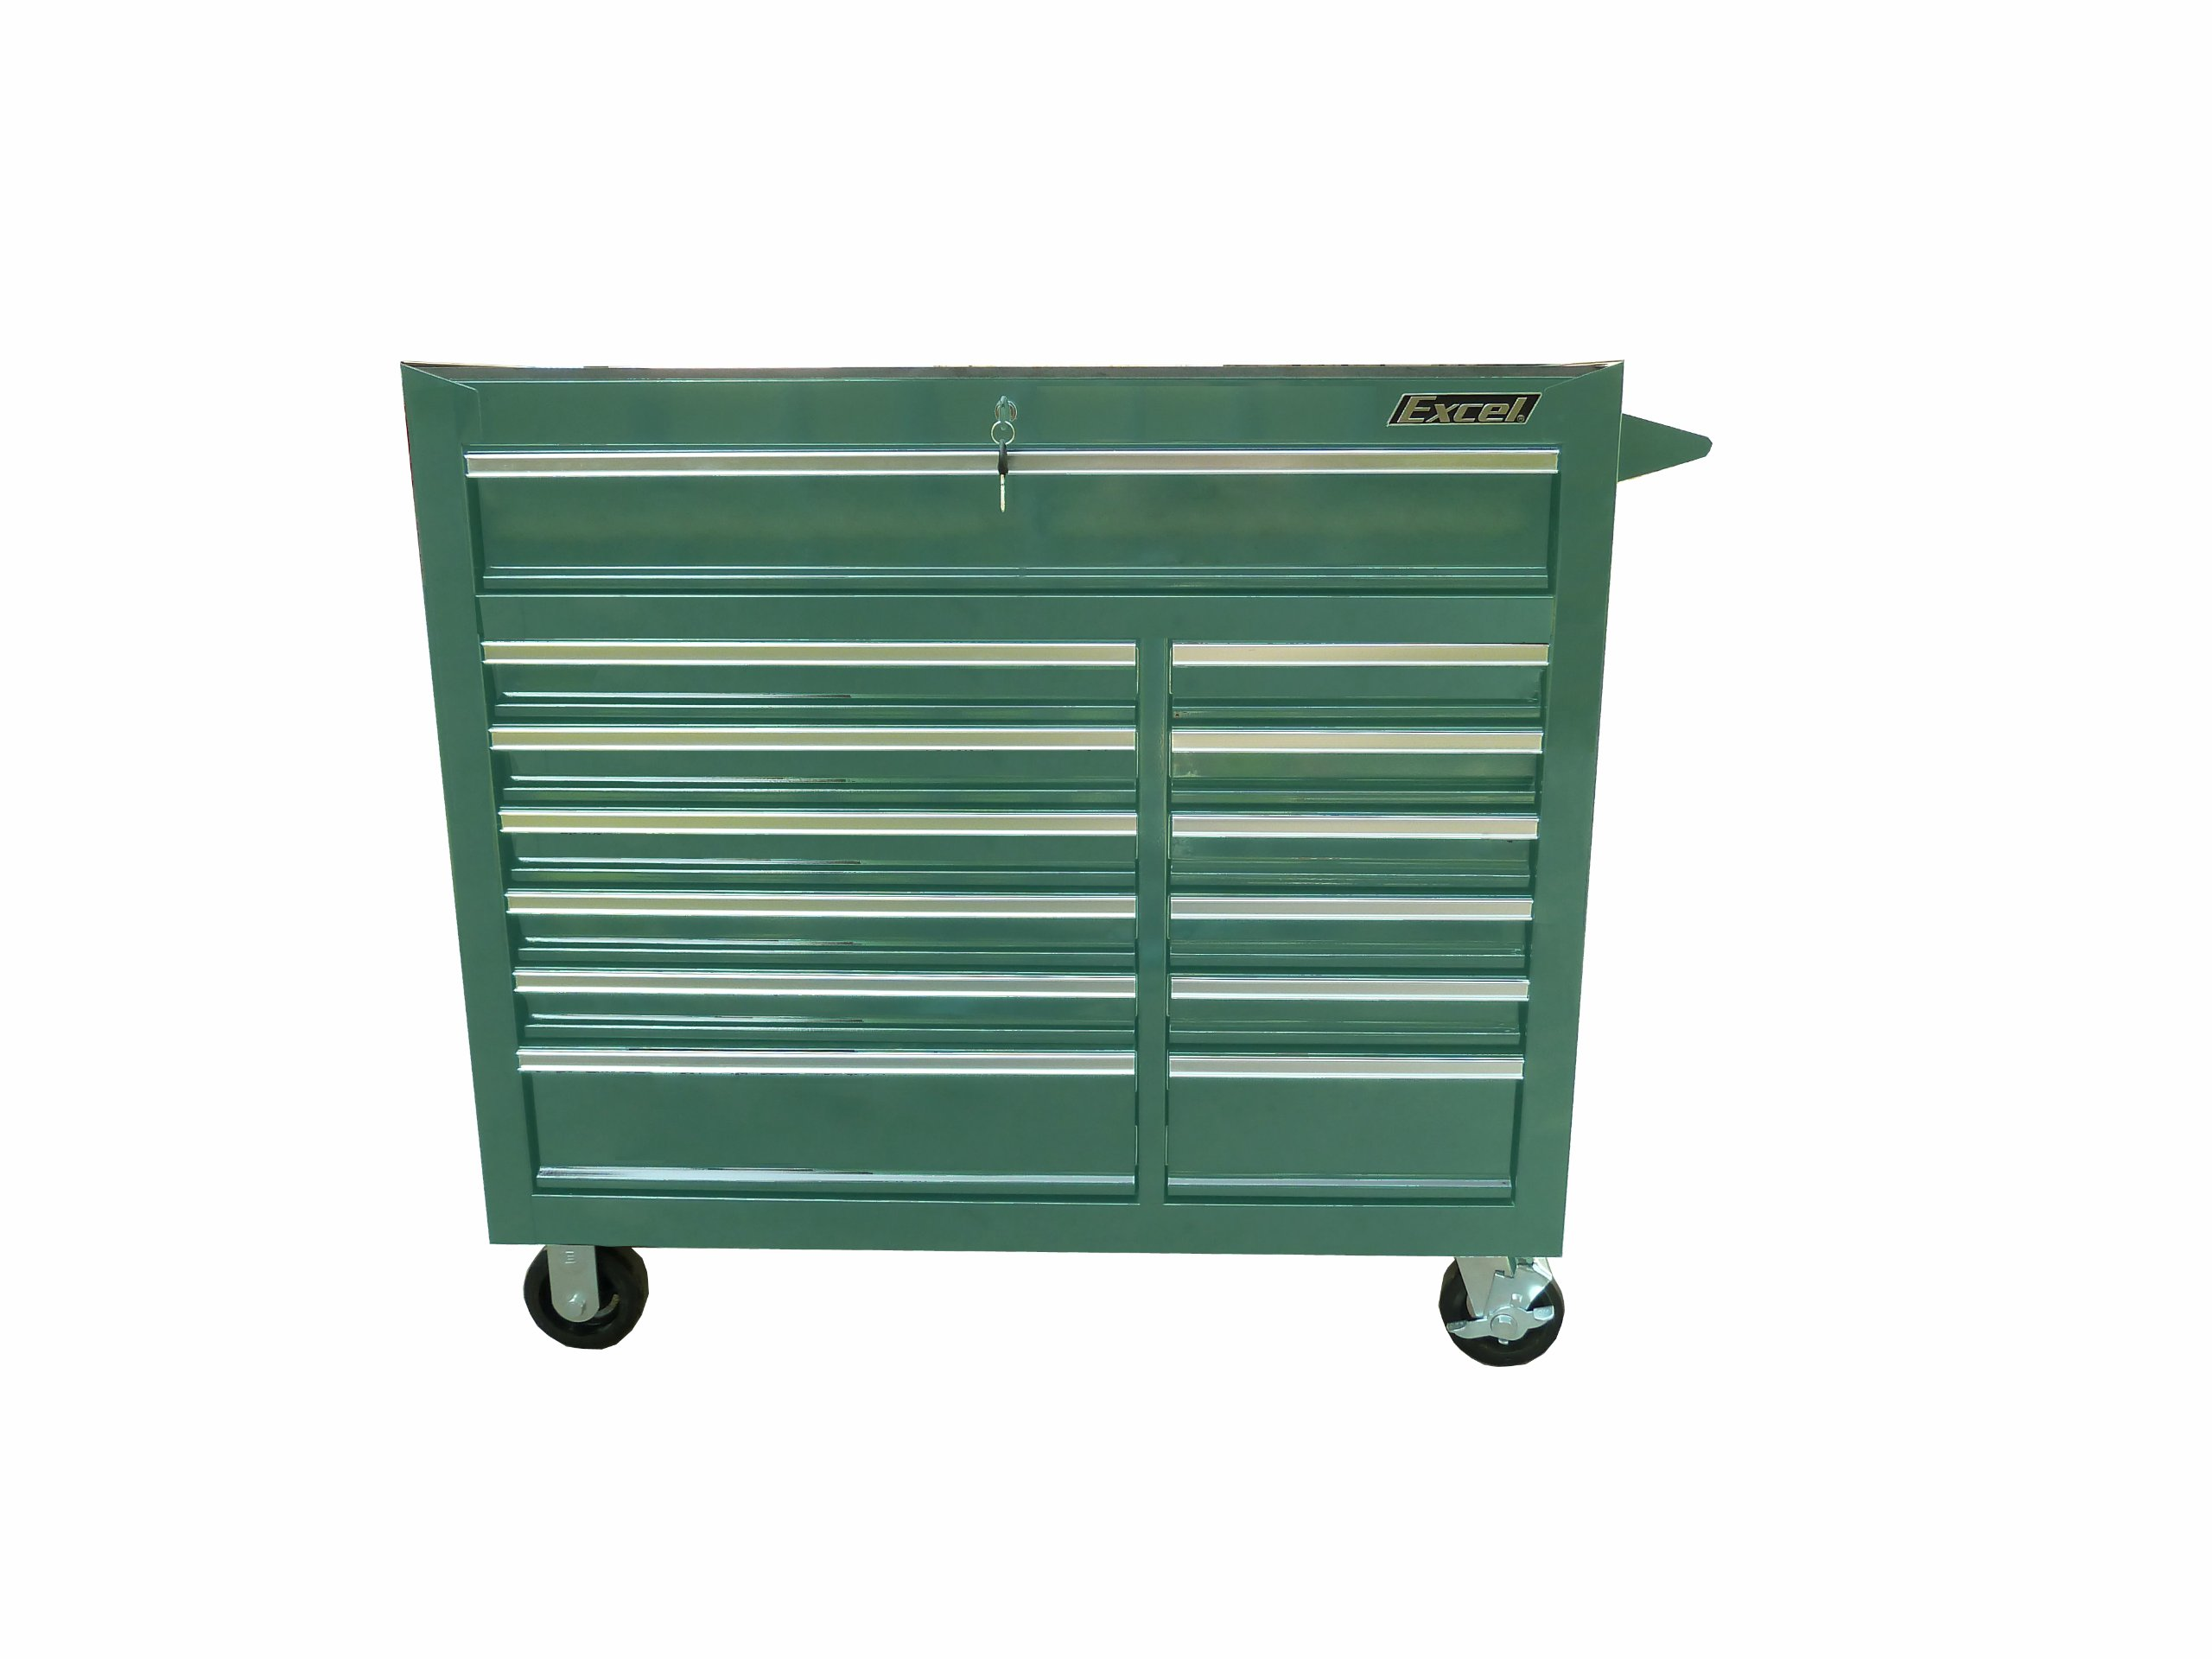 Excel TBR4013X-Teal 13-Drawer Heavy Duty Roller Cabinet, 42-Inch, Teal